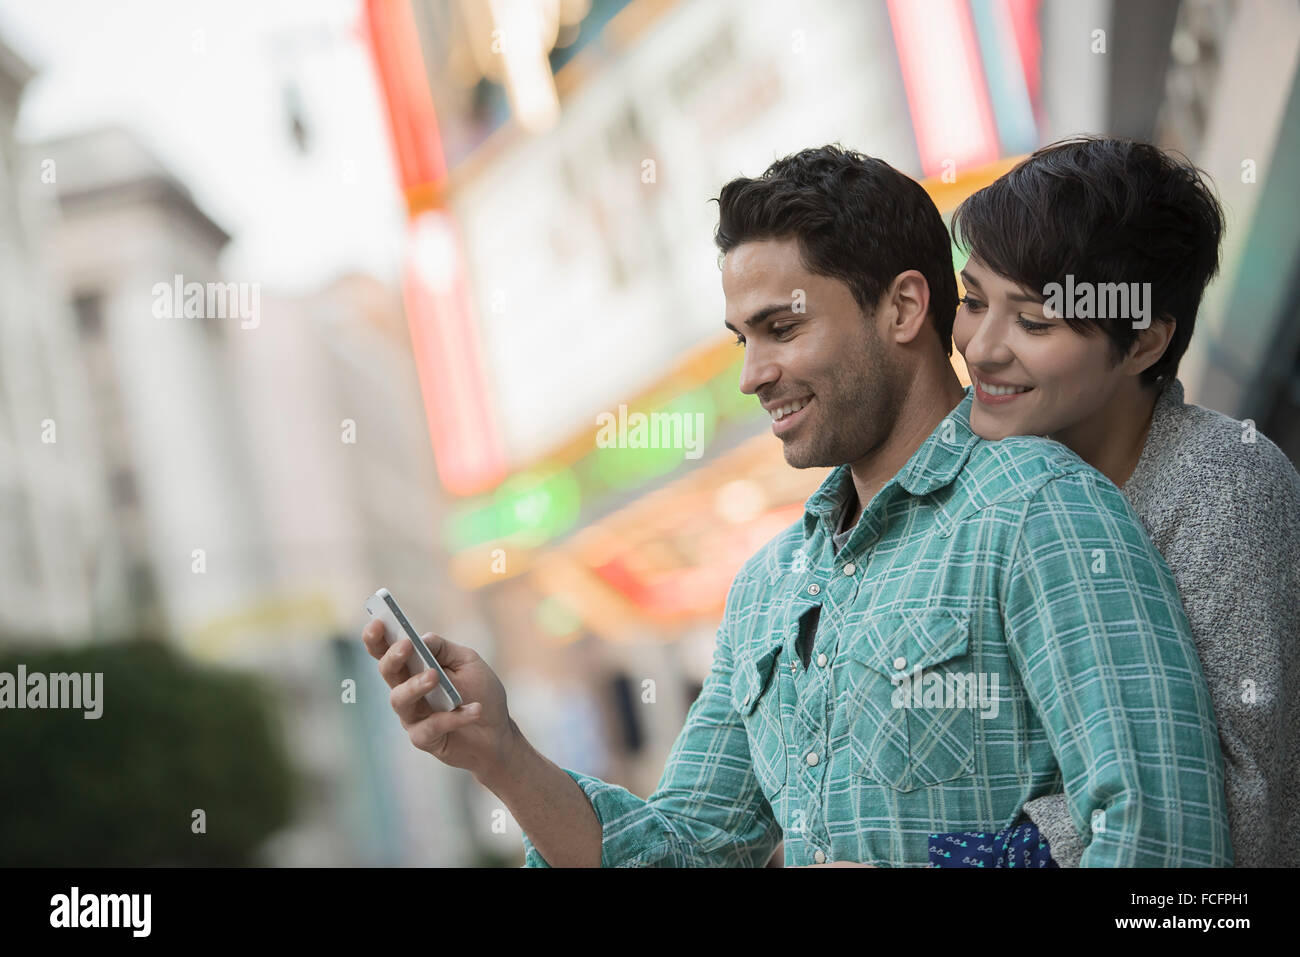 A couple, man and woman hugging on a city street. Man holding a smart phone. - Stock Image